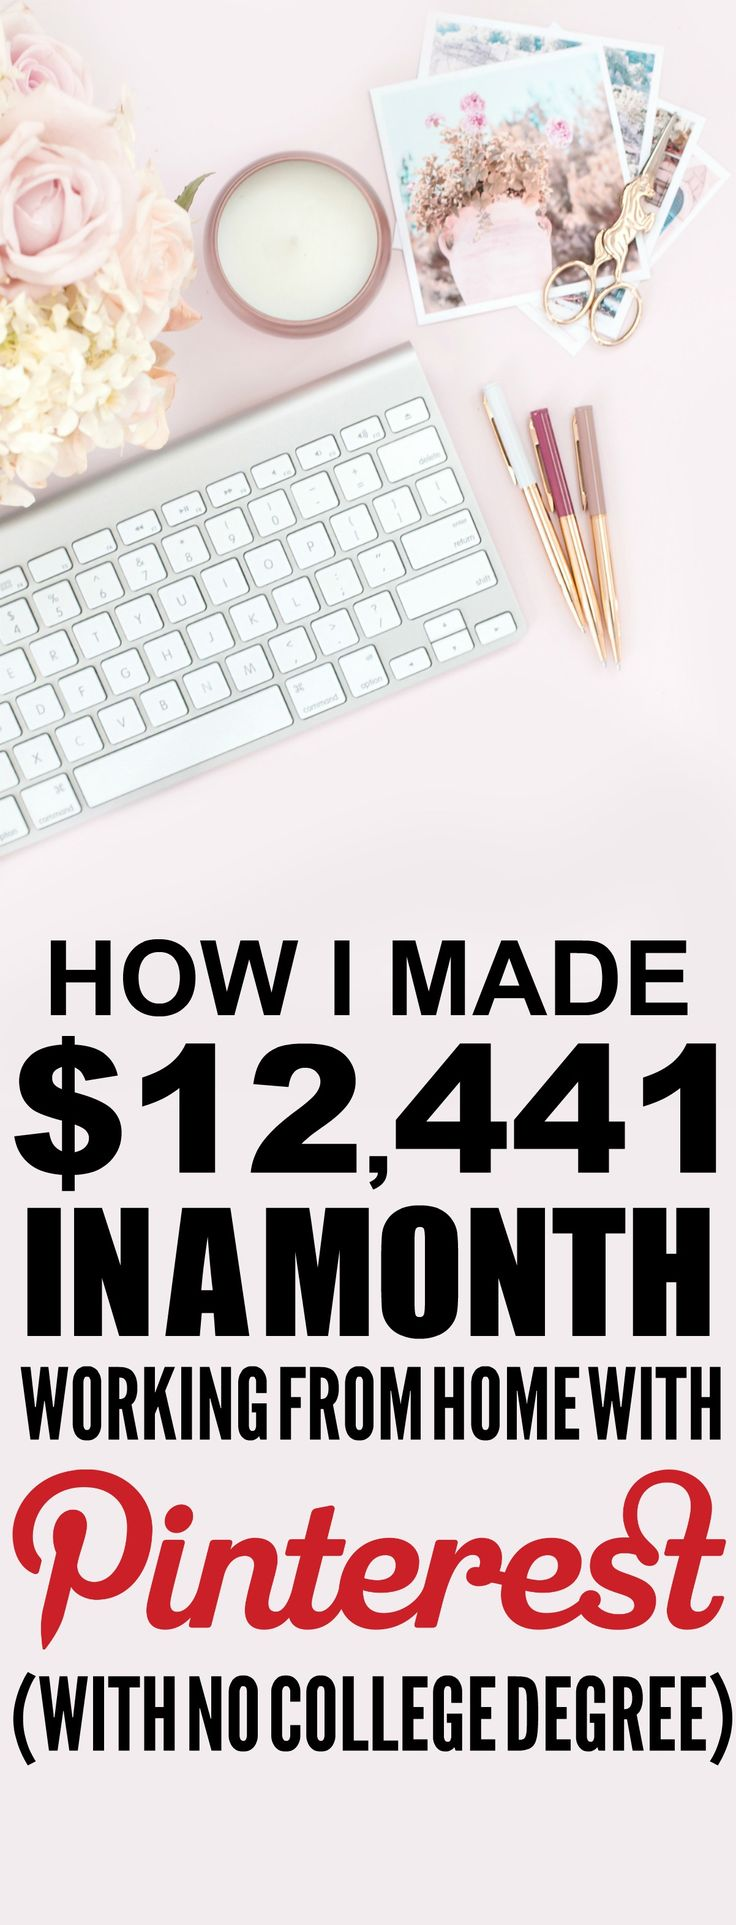 How she made $12,441 online last month is SO COOL! I'm so happy I found these GREAT tips! Now I have a great way to make money online and work from home! I never thought about how to blog before. Definitely pinning!